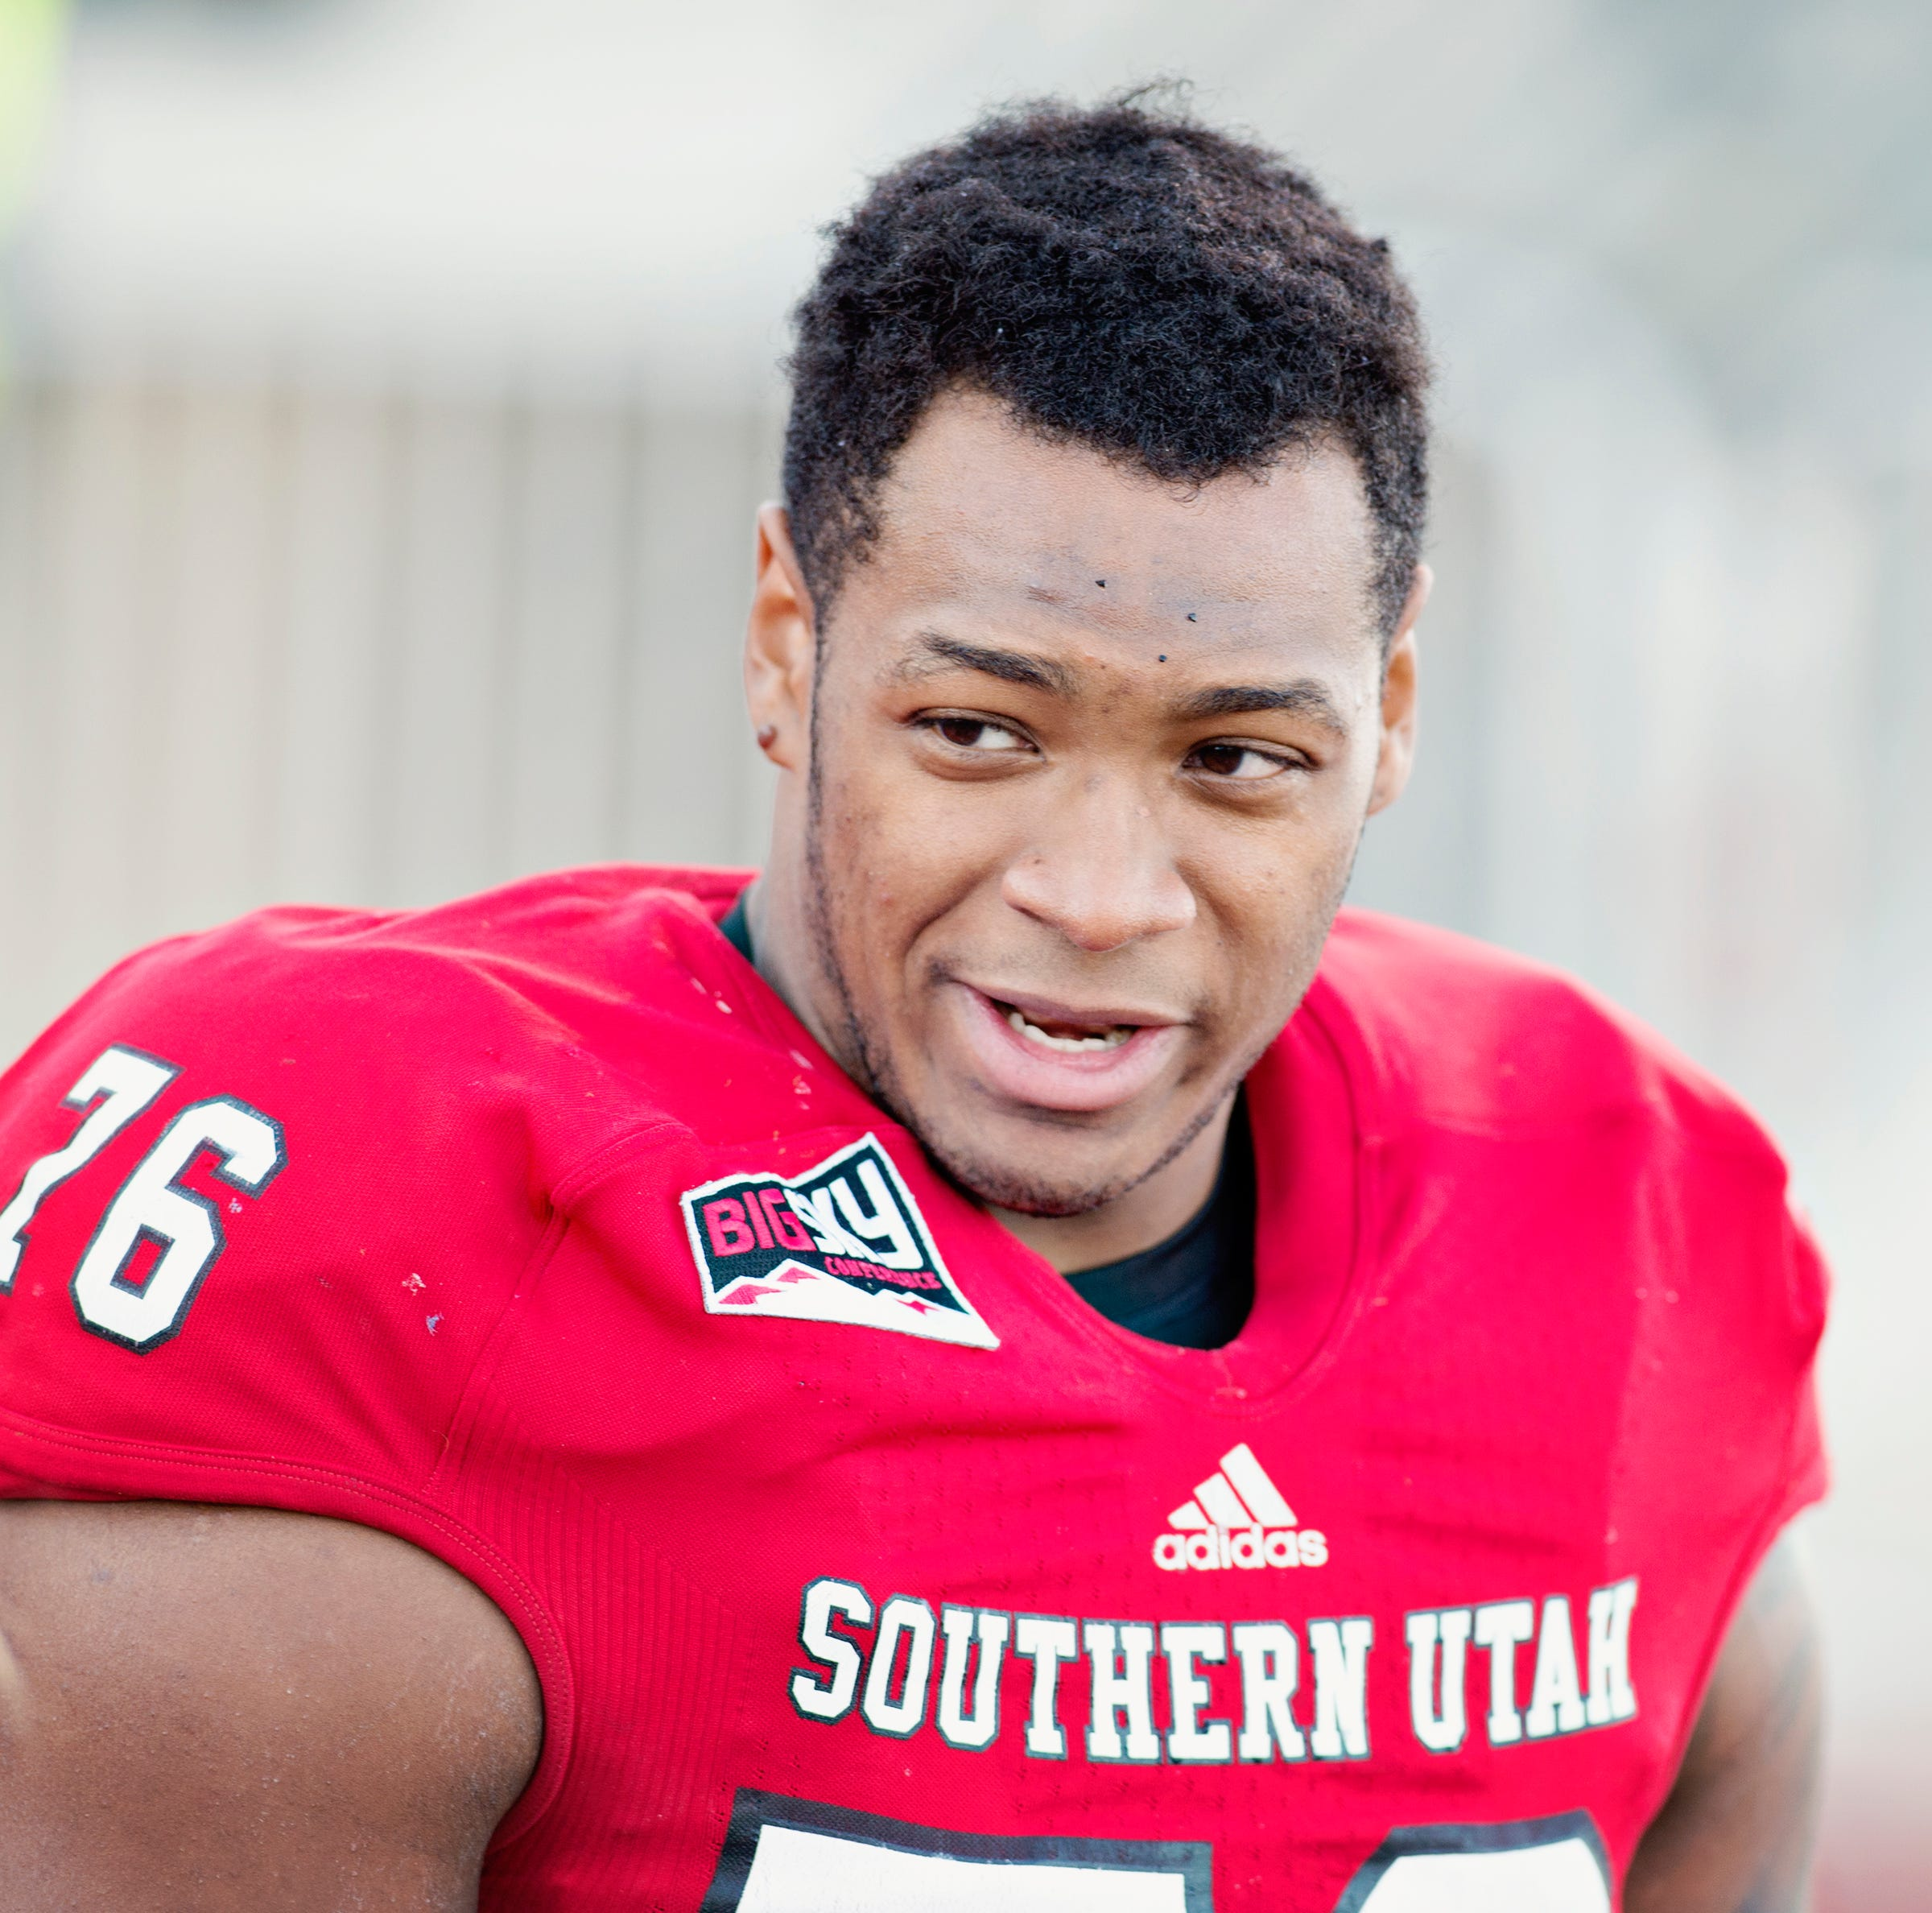 10 Utah college football players to know before the 2019 NFL Draft